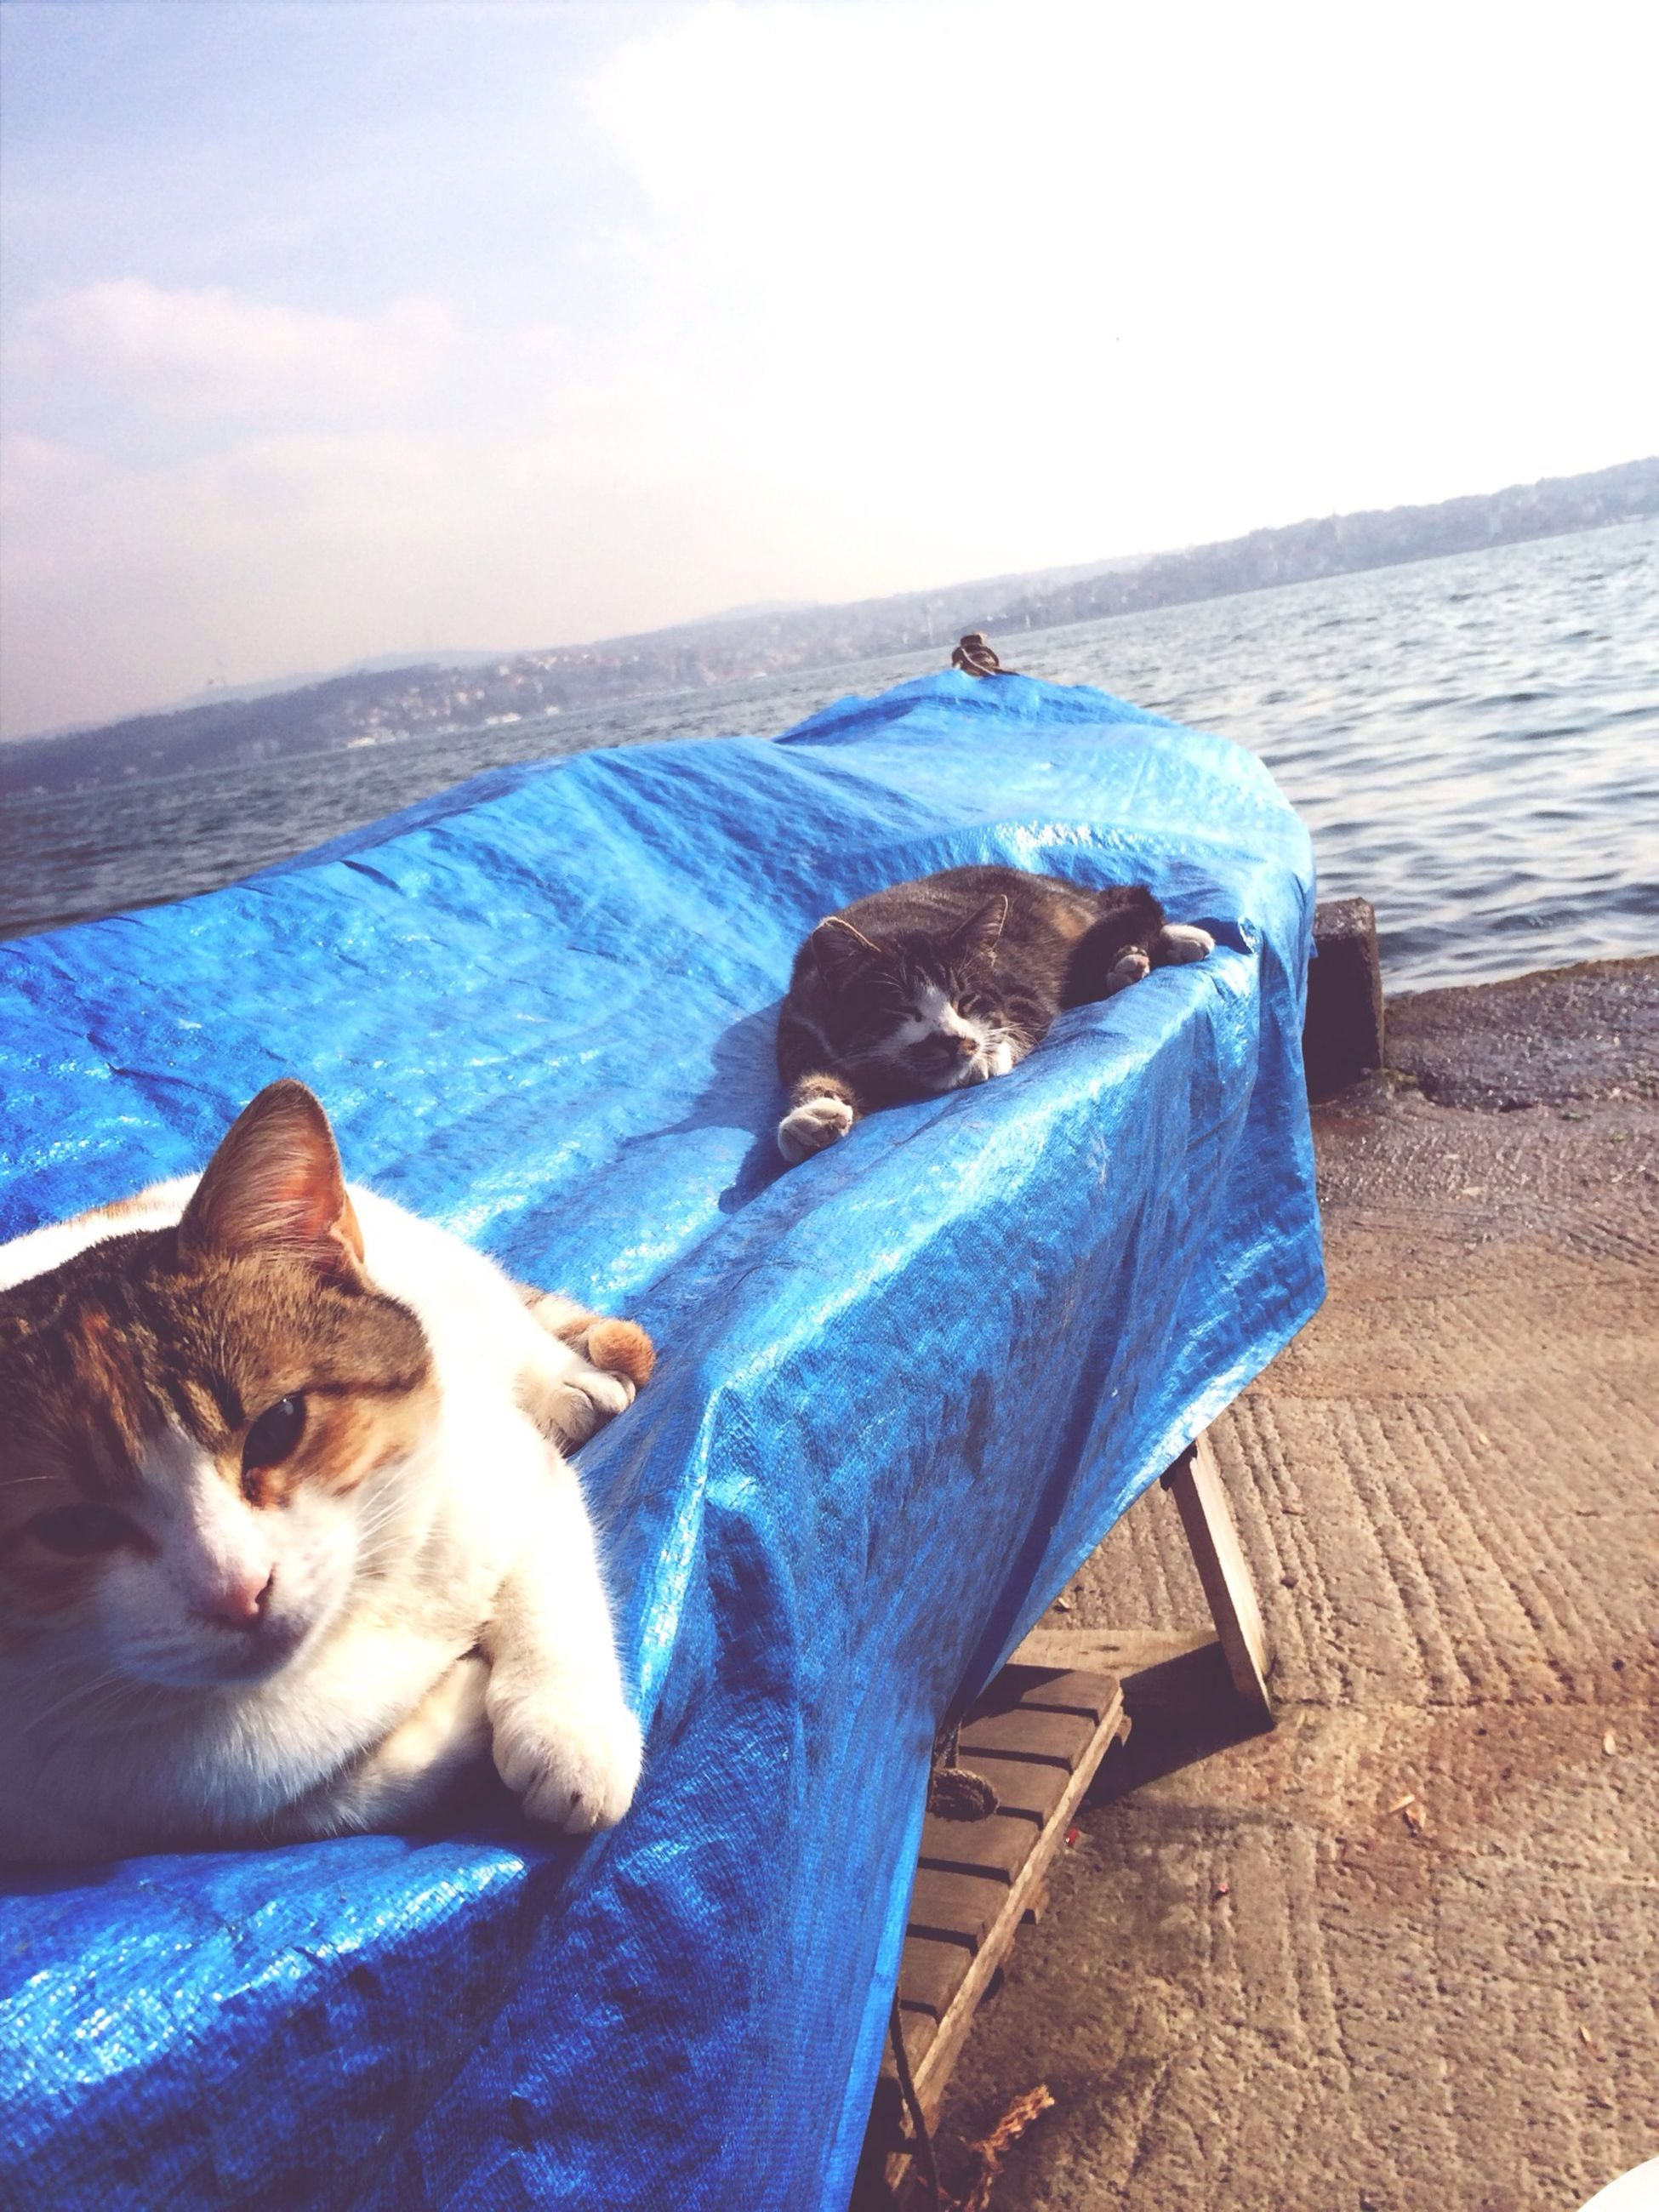 pets, domestic animals, mammal, one animal, animal themes, dog, domestic cat, relaxation, sea, resting, lying down, sky, cat, blue, water, nature, sitting, feline, day, sleeping